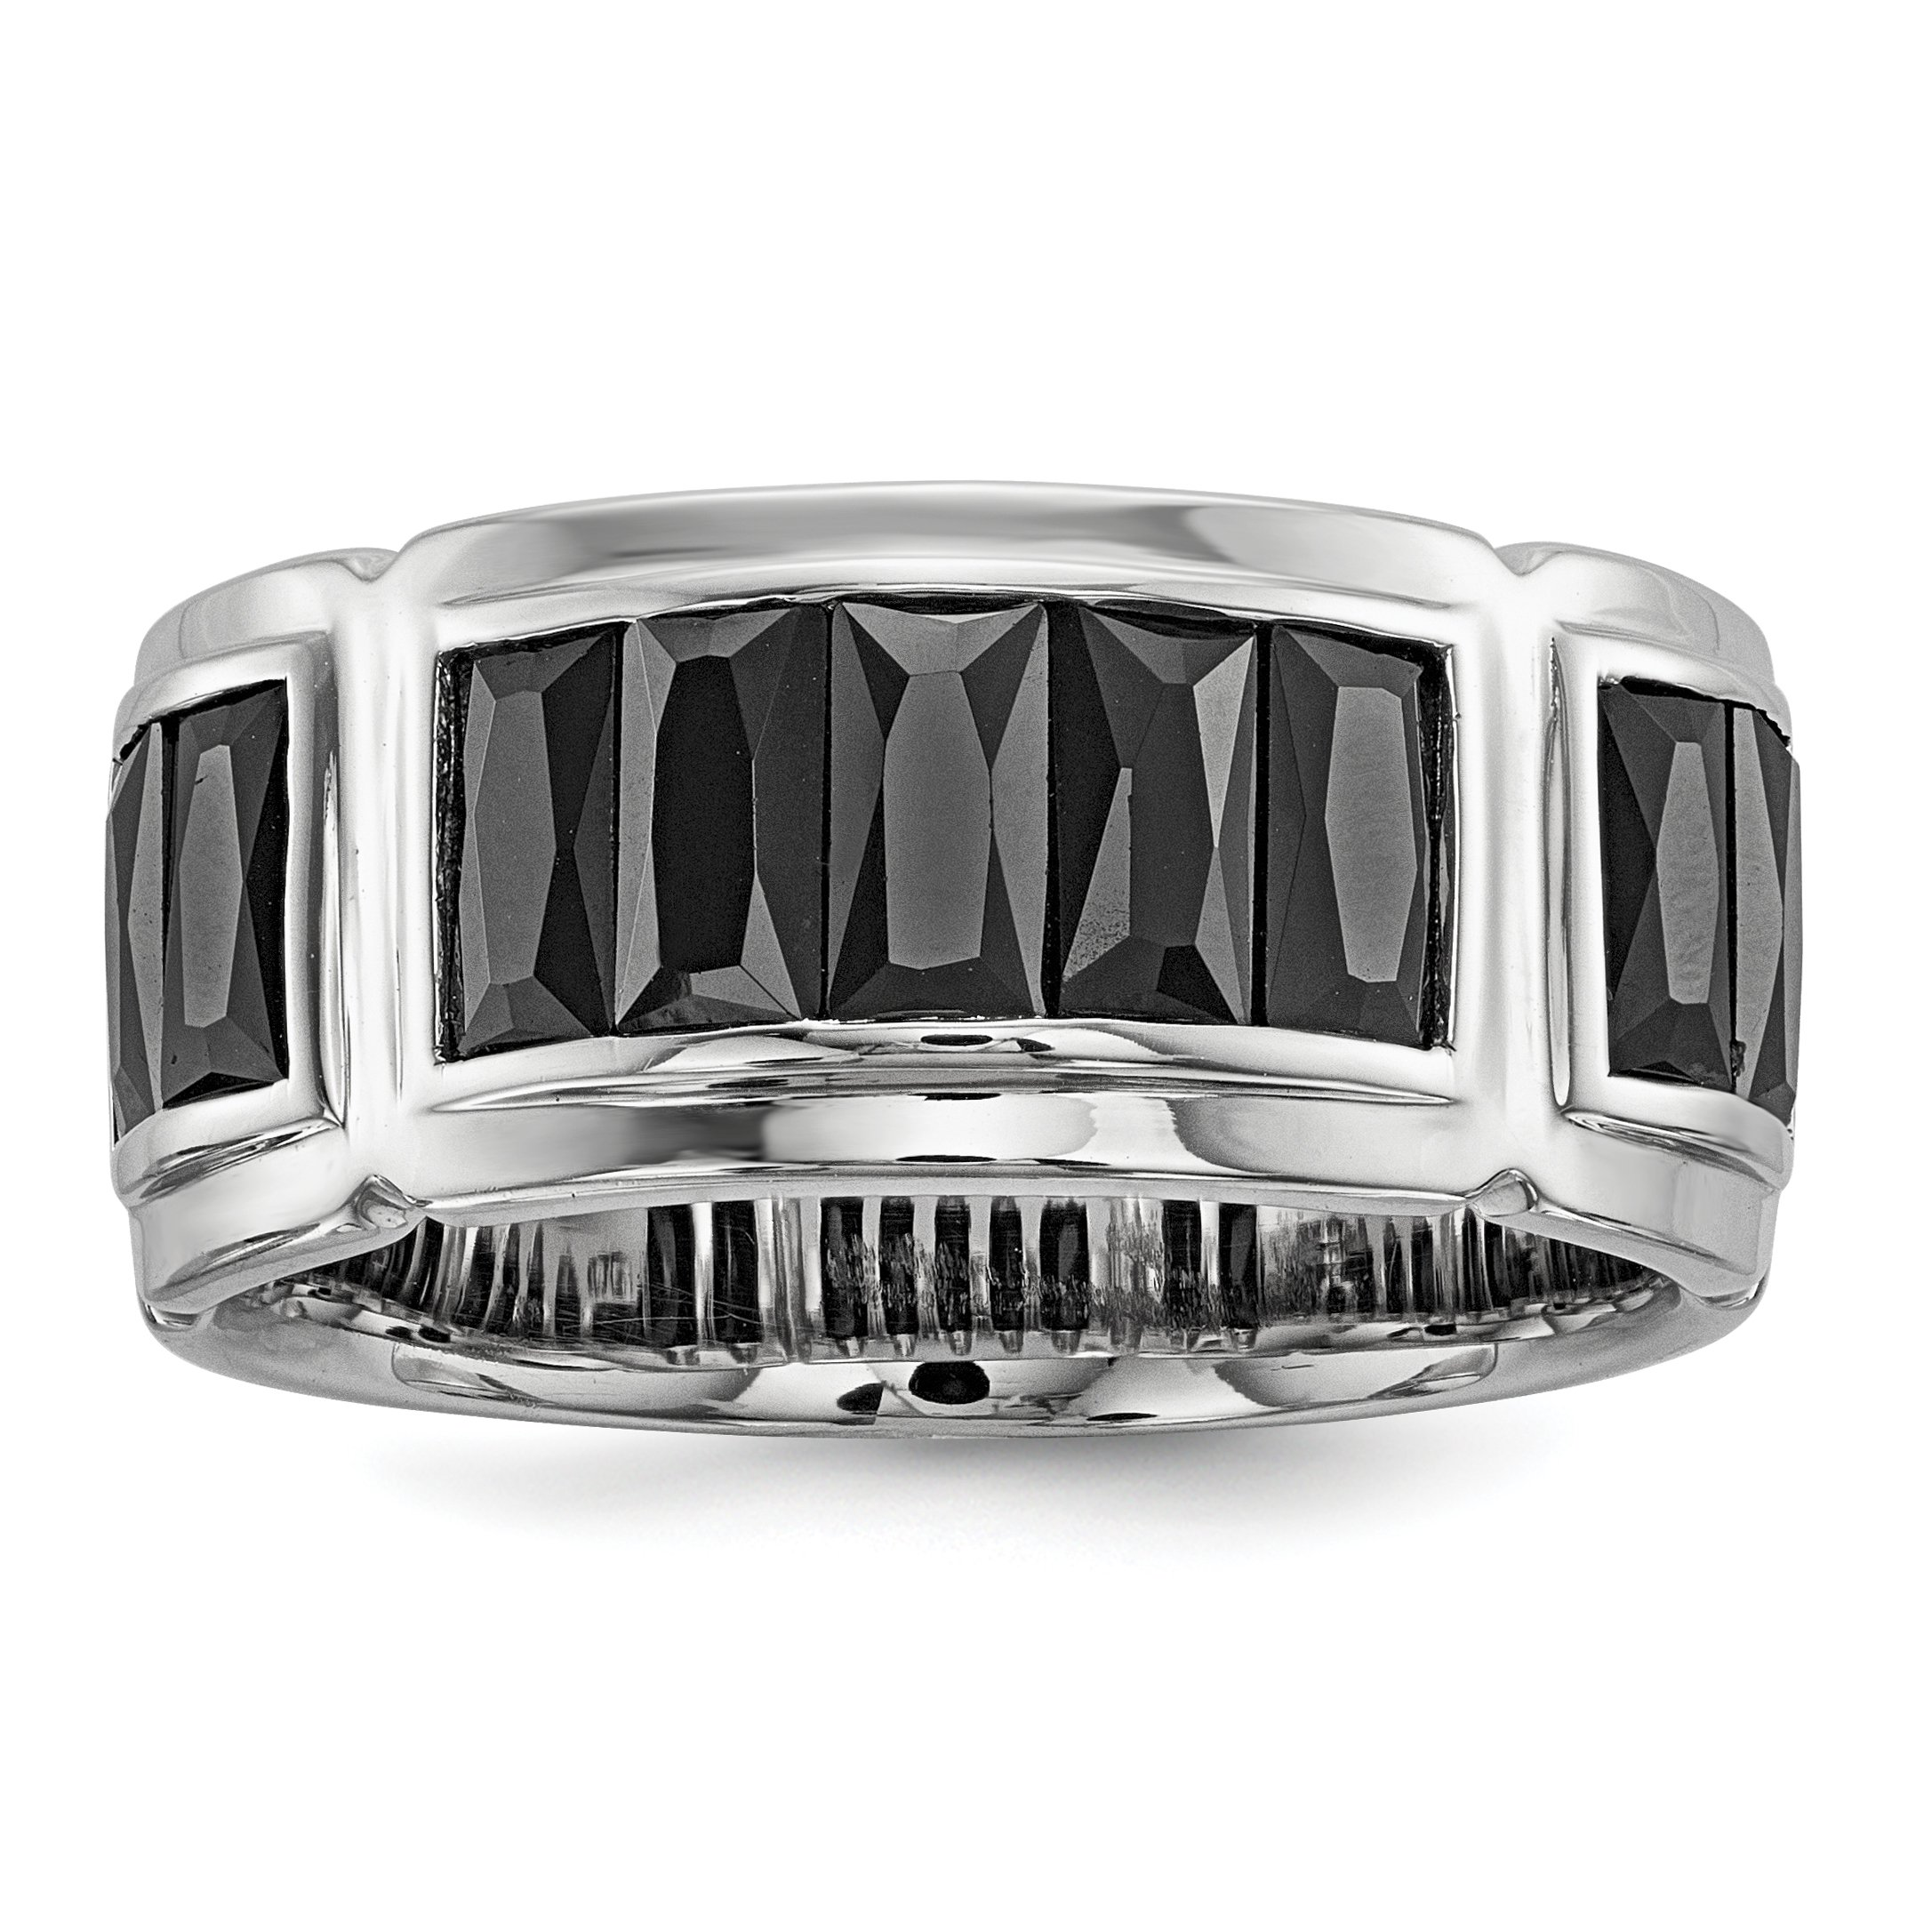 ICE CARATS 925 Sterling Silver Black Cubic Zirconia Cz Grooved Band Ring Size 11.00 Man Fine Jewelry Gift Set For Women Heart